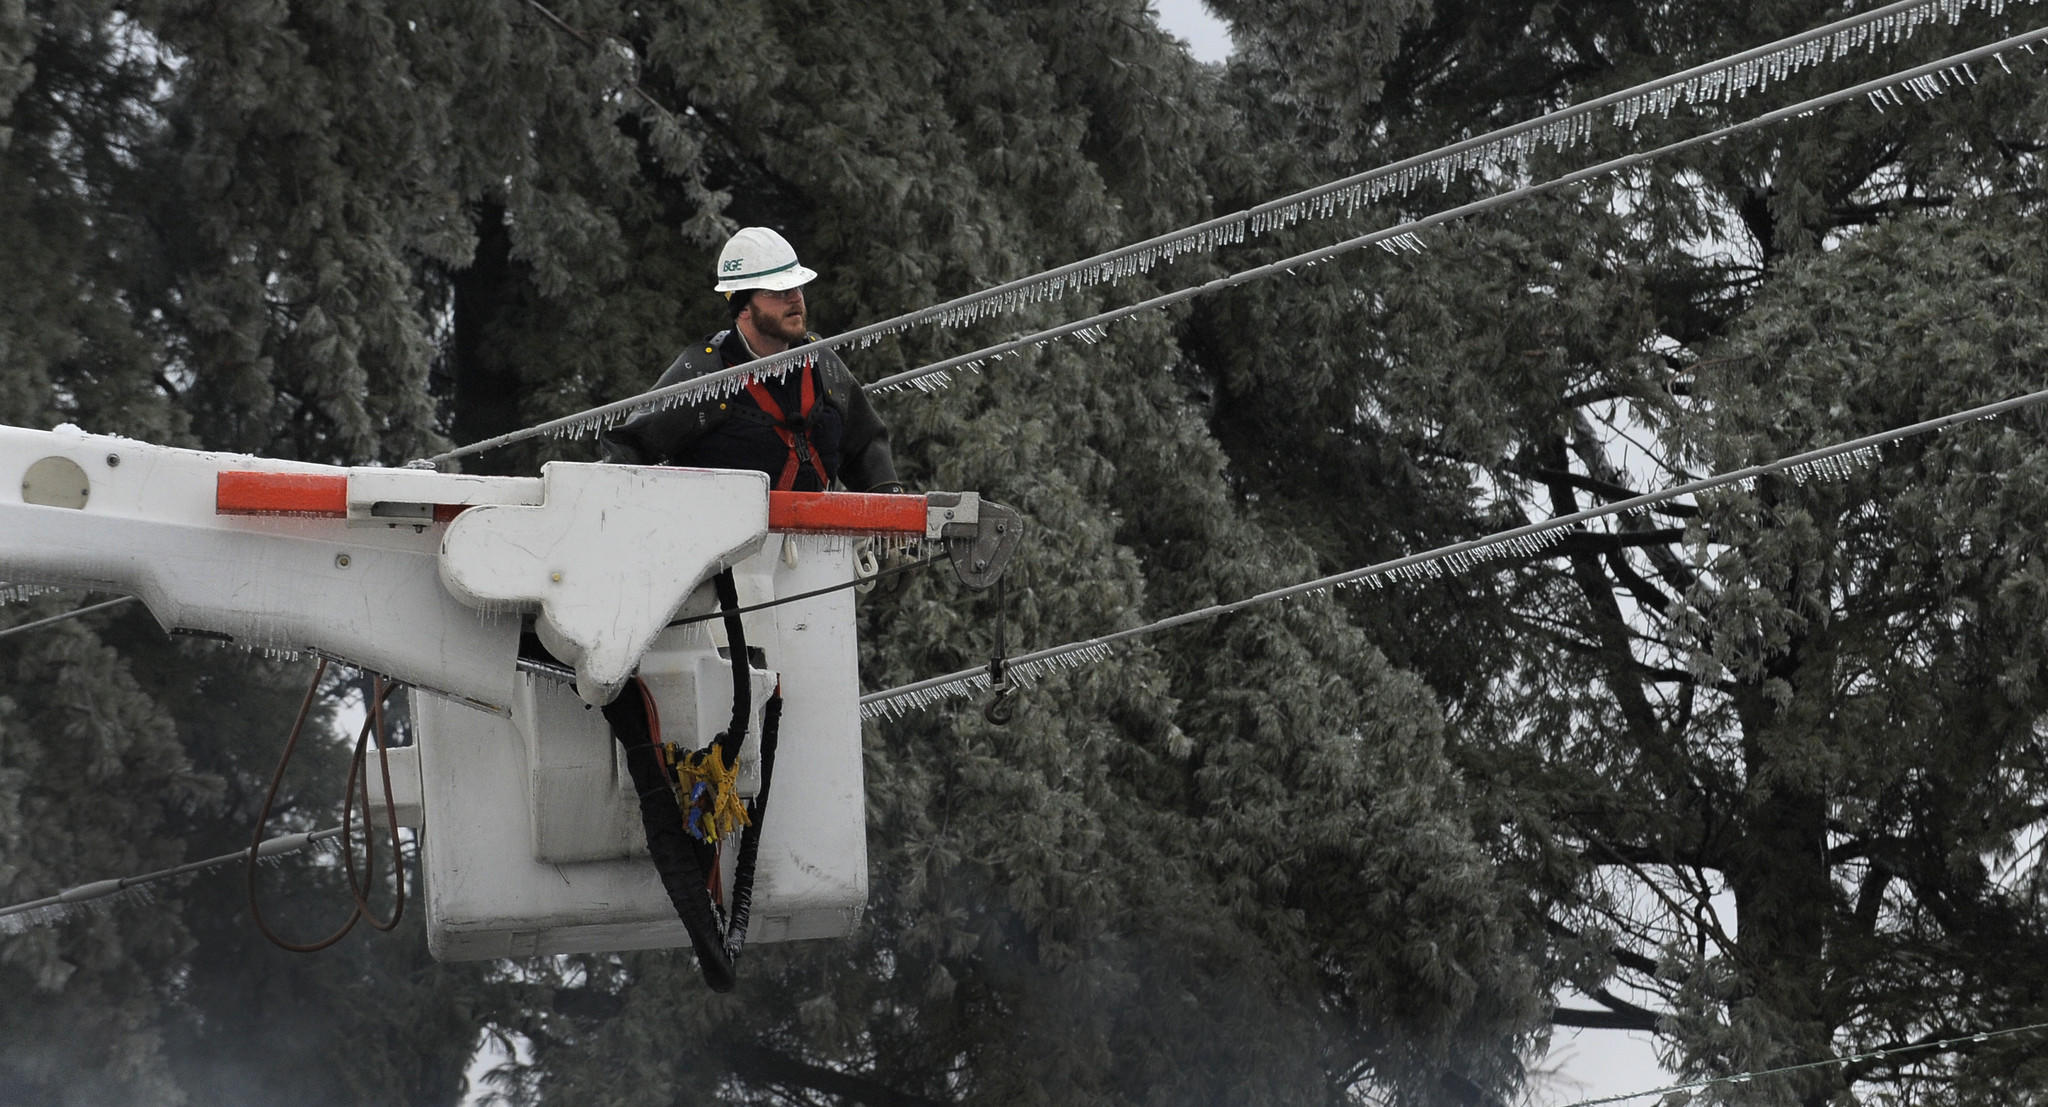 BGE workers remove an ice covered tree limb from power lines along Fallson Road in Fallston Wednesday.